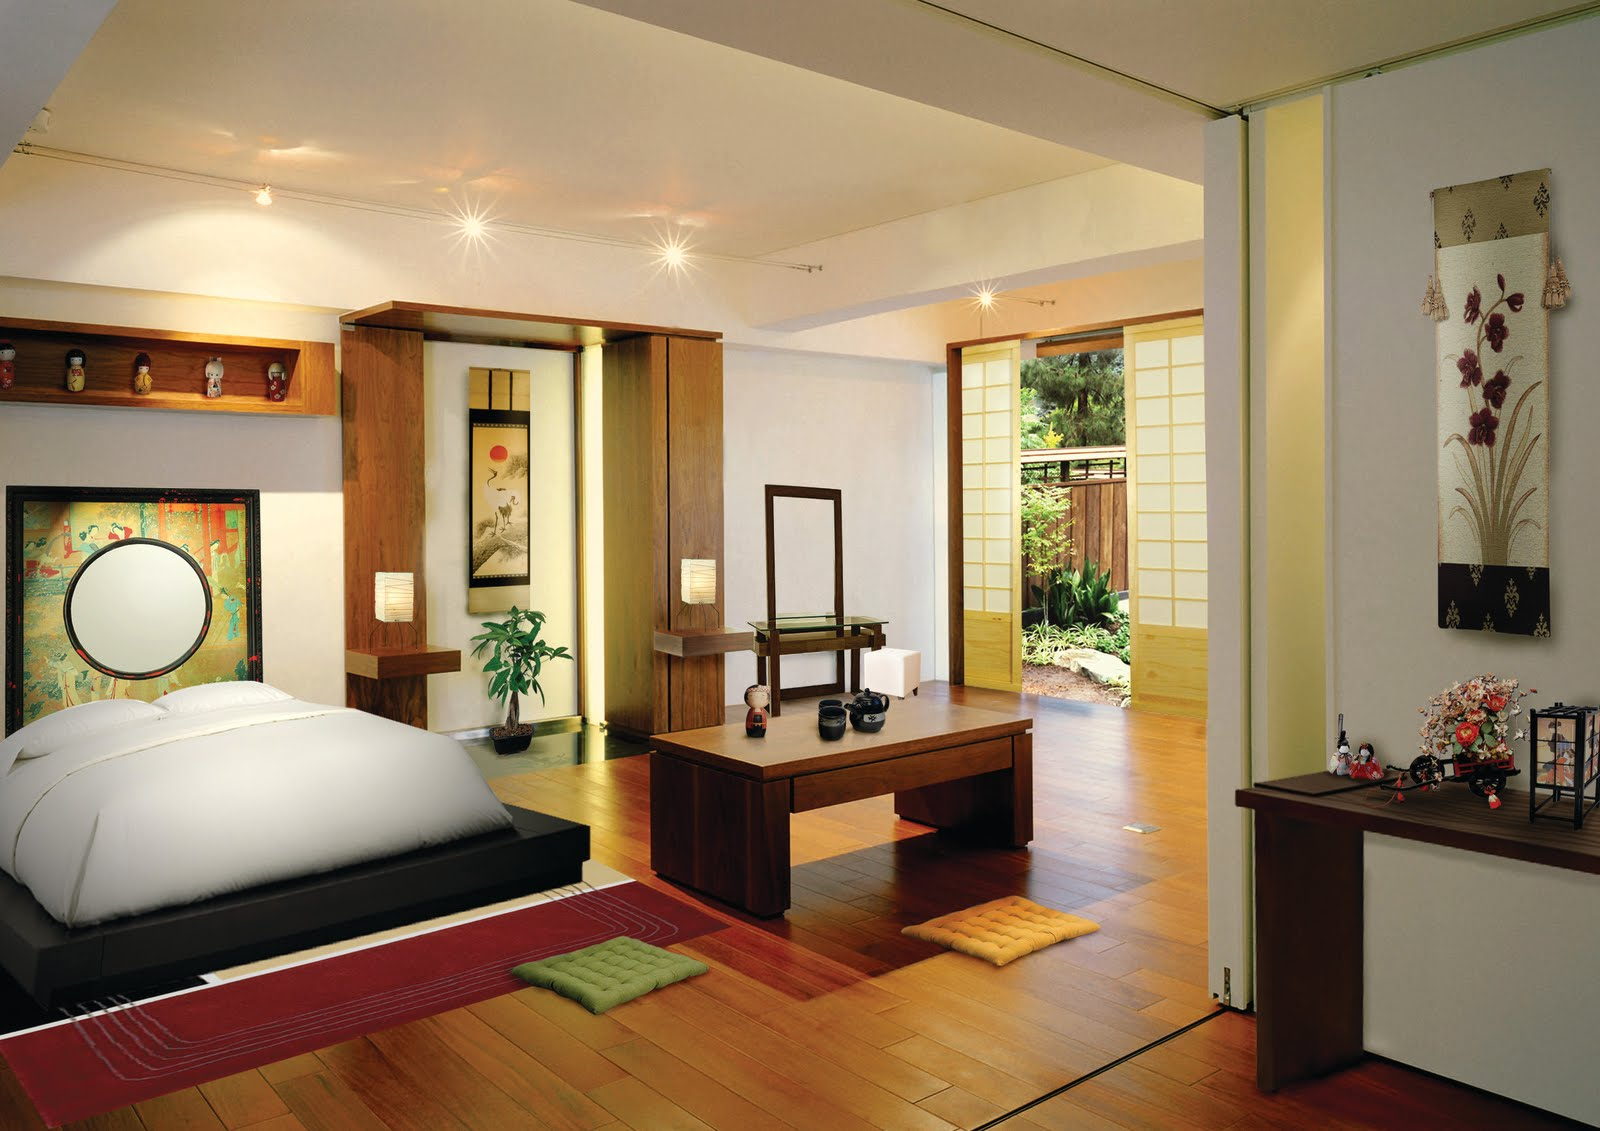 Melokumi japanese style bedroom design for Bedroom design styles